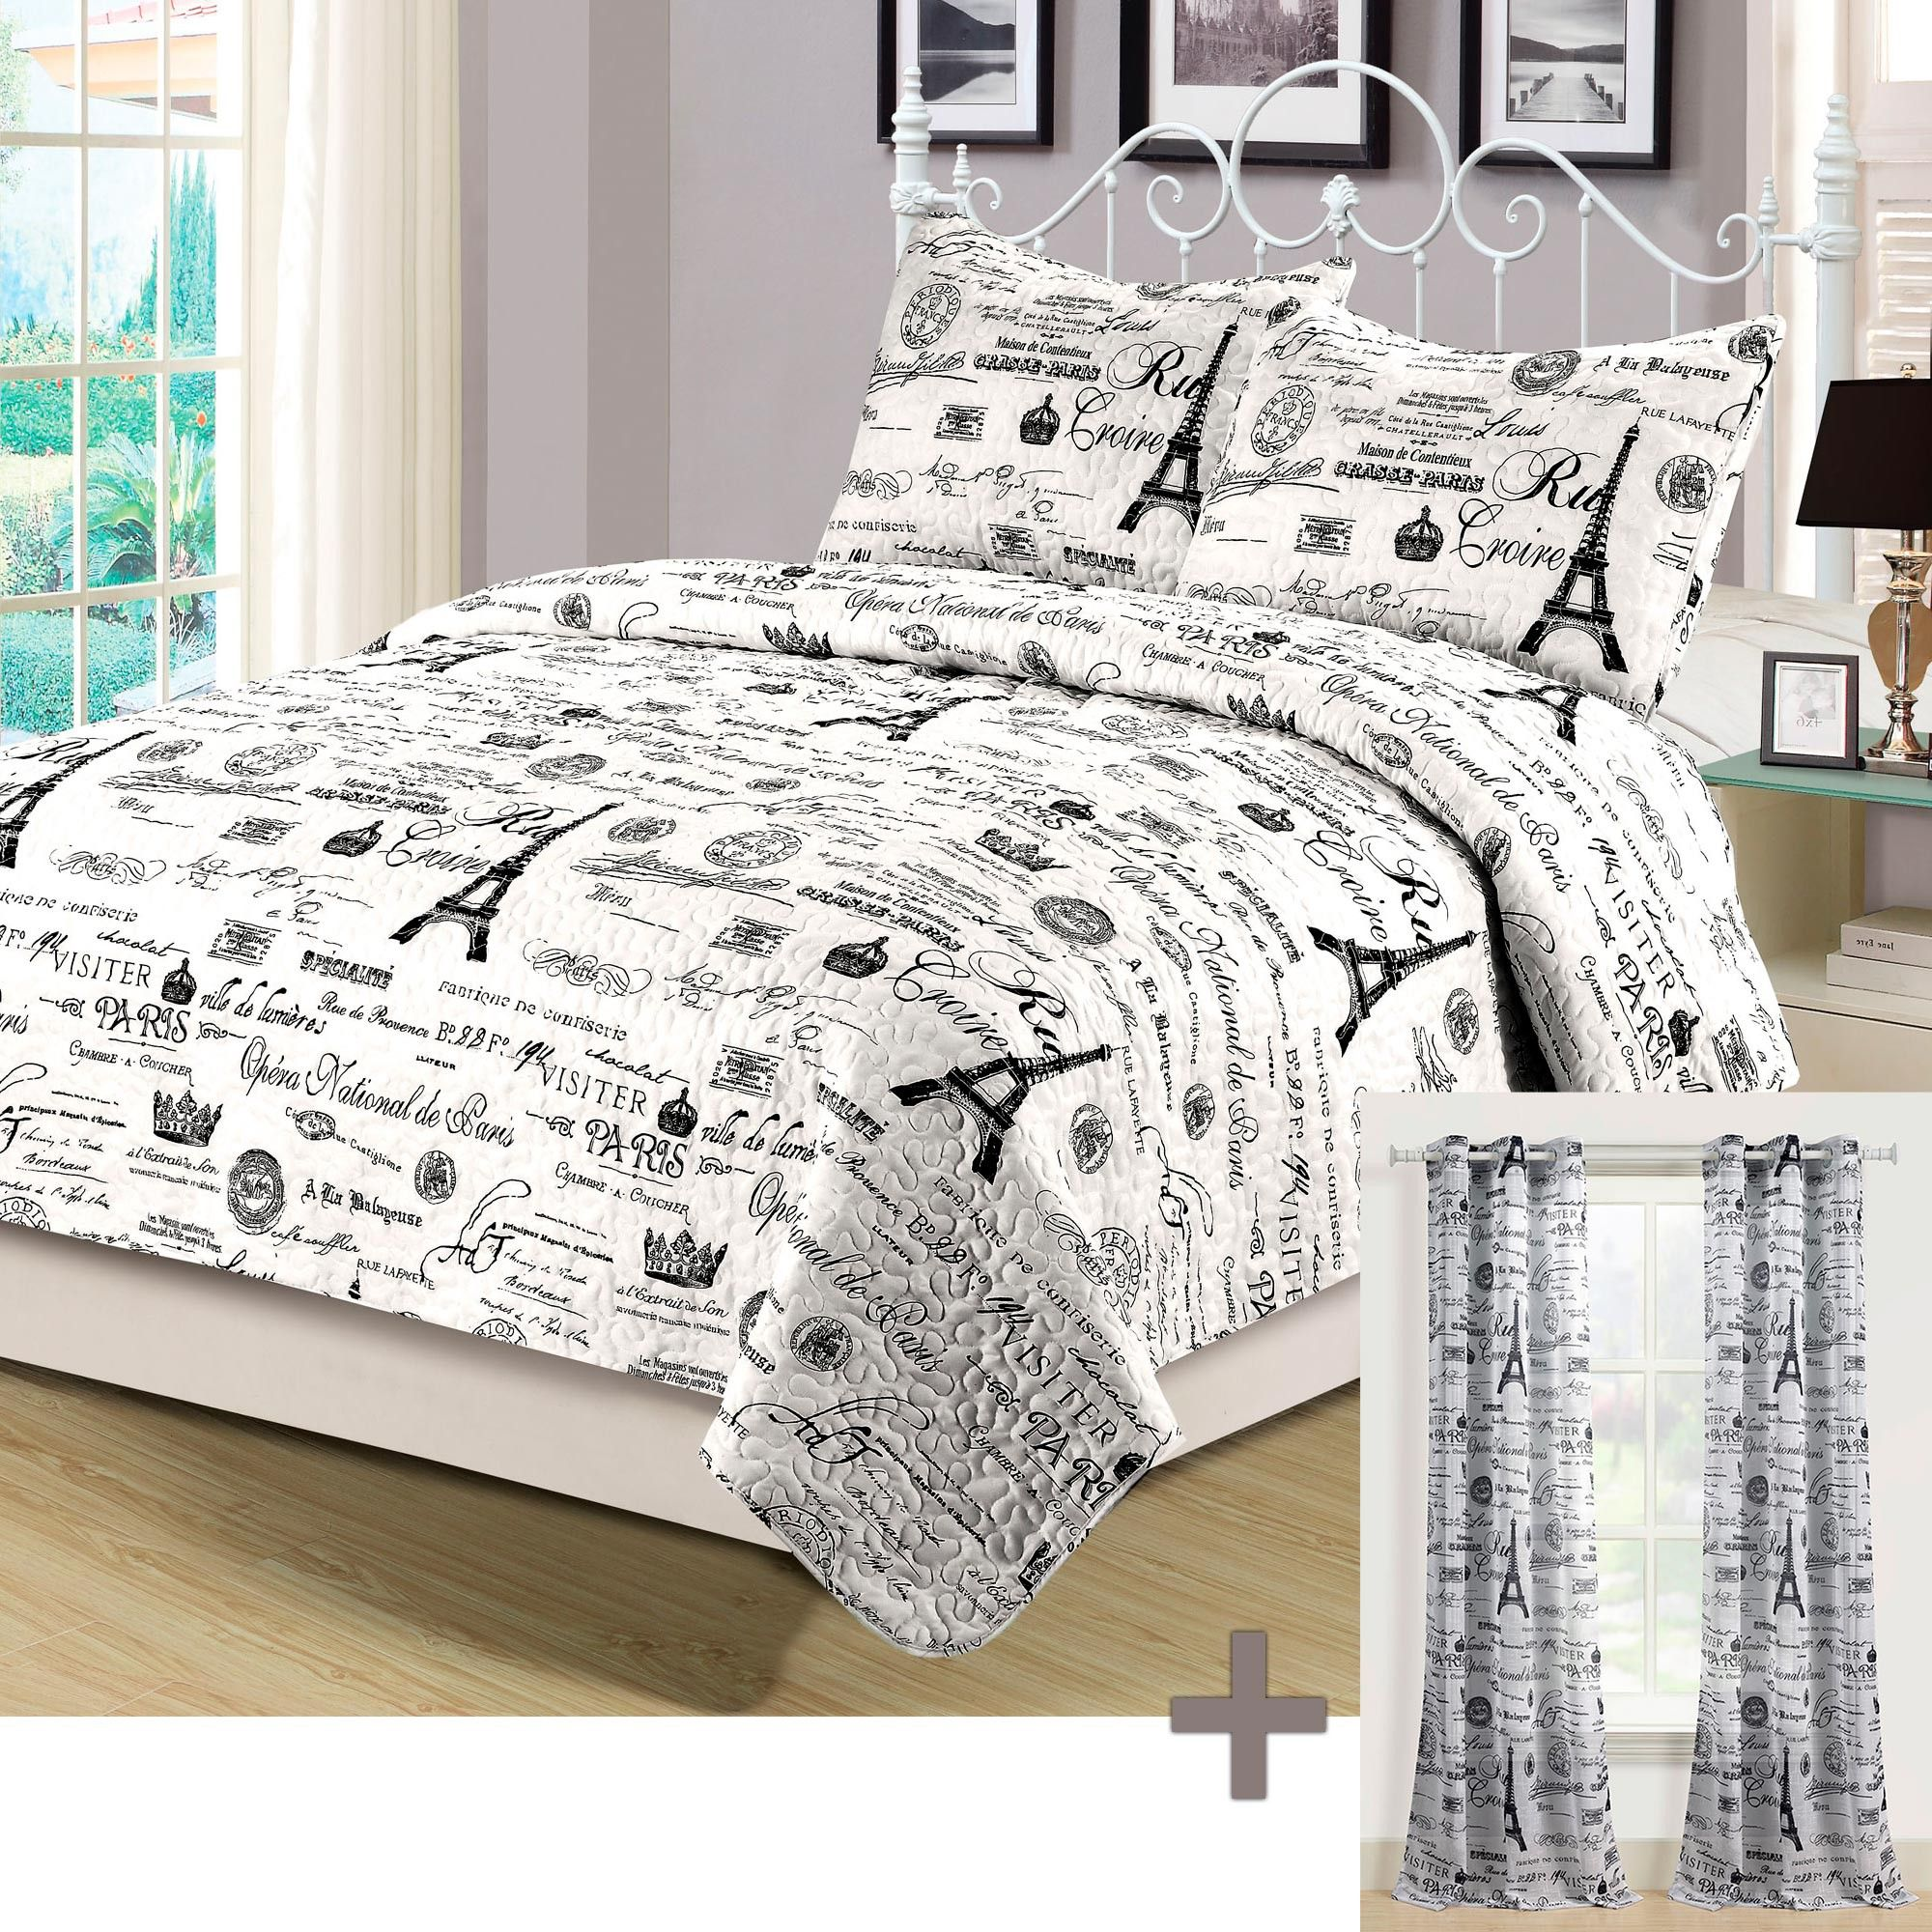 Beatrice Paris King Quilt Set With Matching Curtains 5 Piece